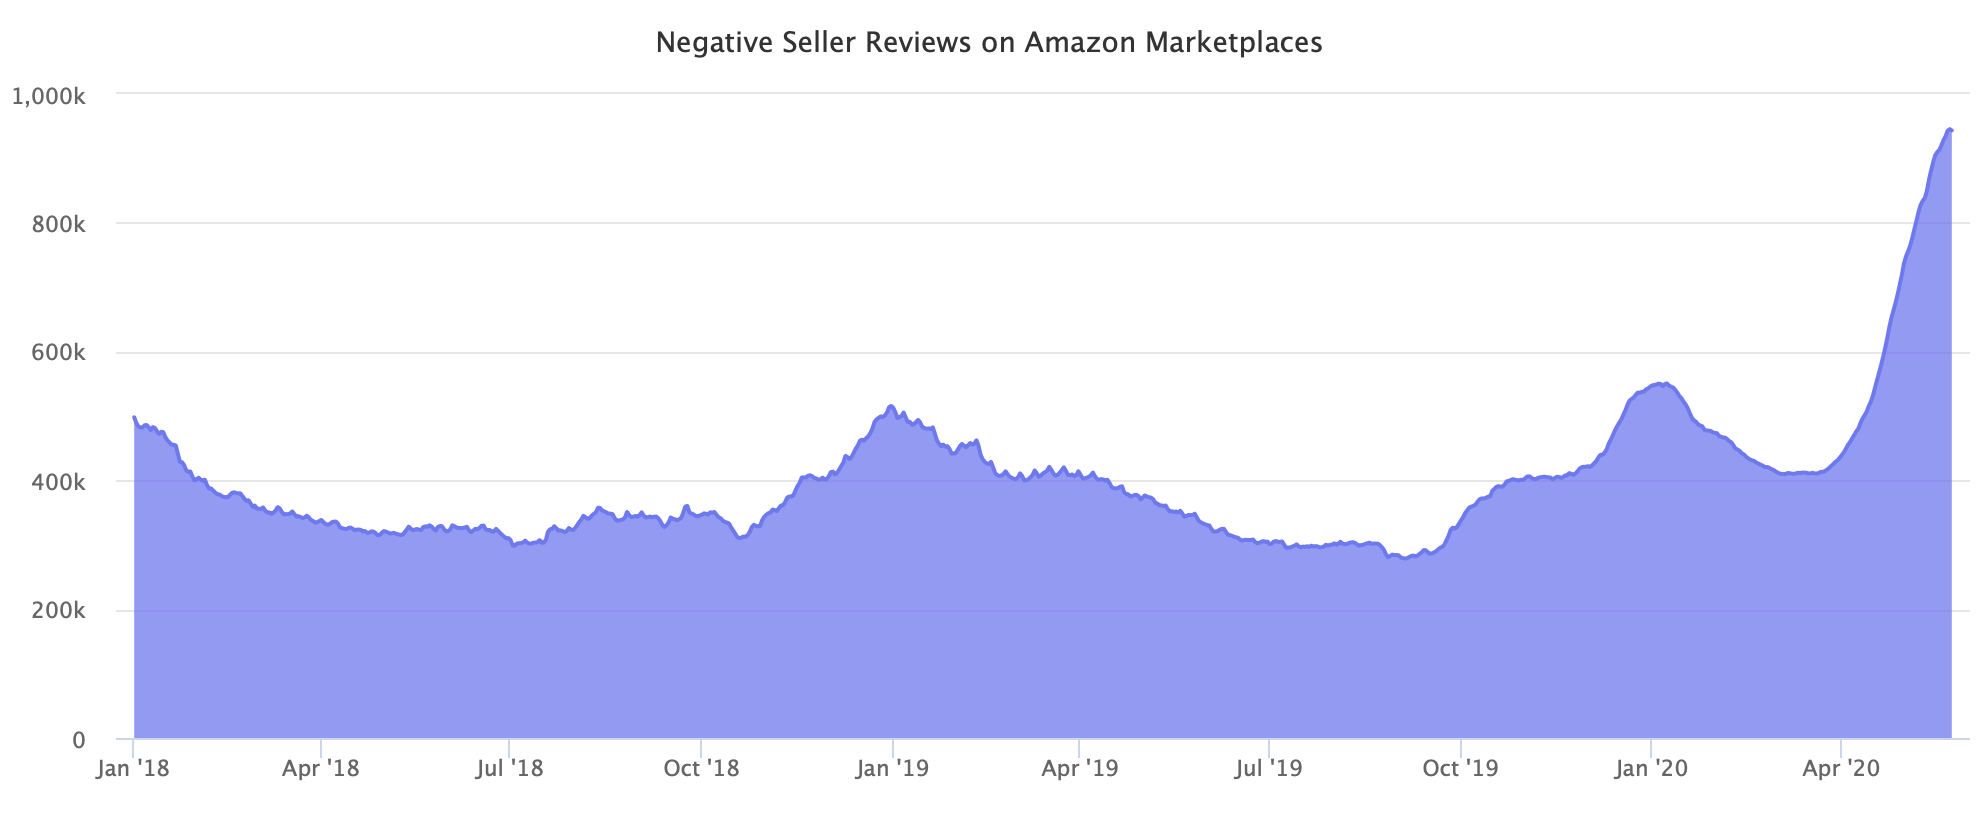 Negative Seller Reviews on Amazon Marketplaces